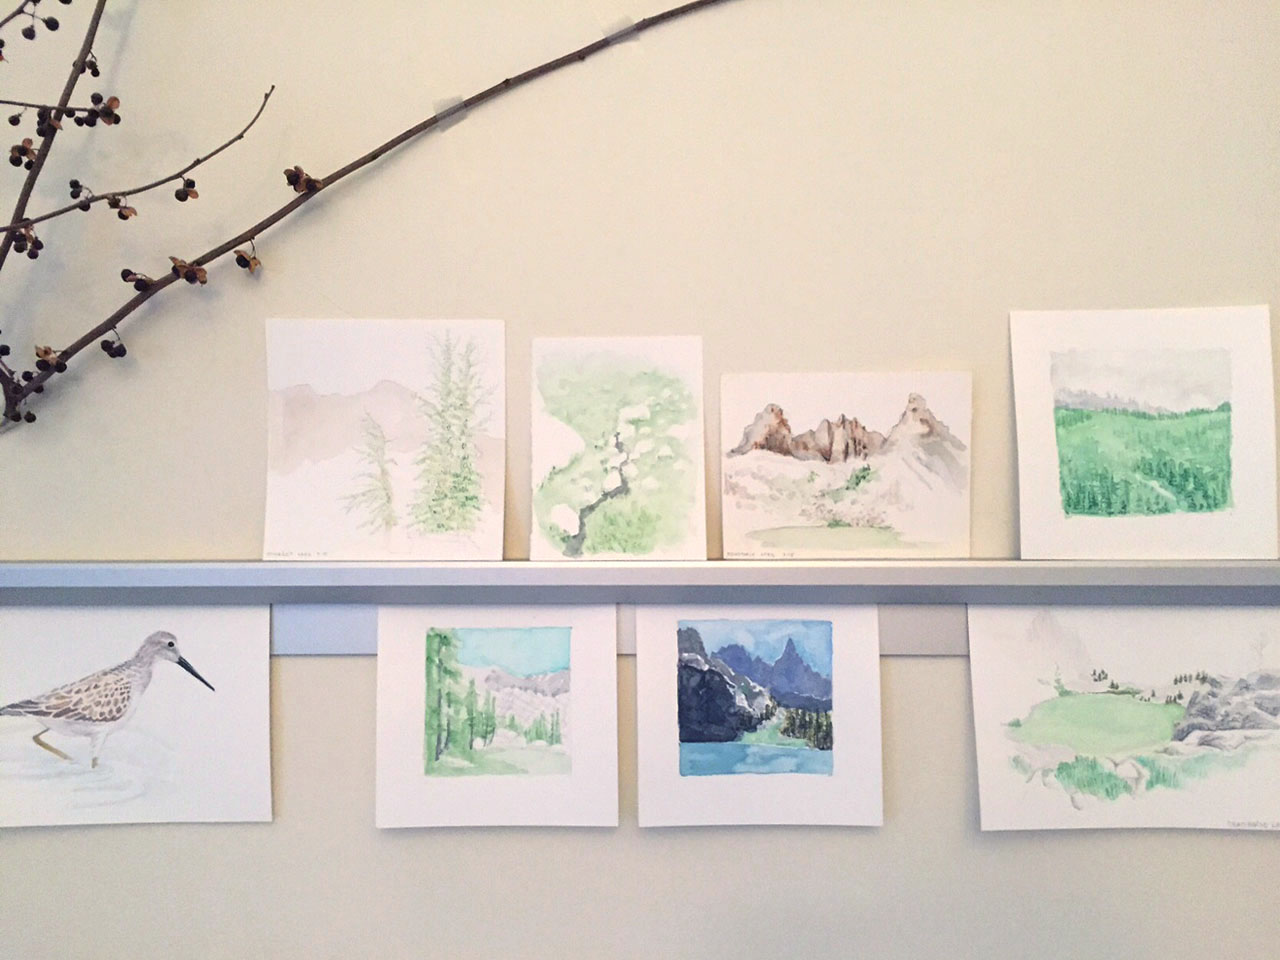 Studio, Nature Drawings